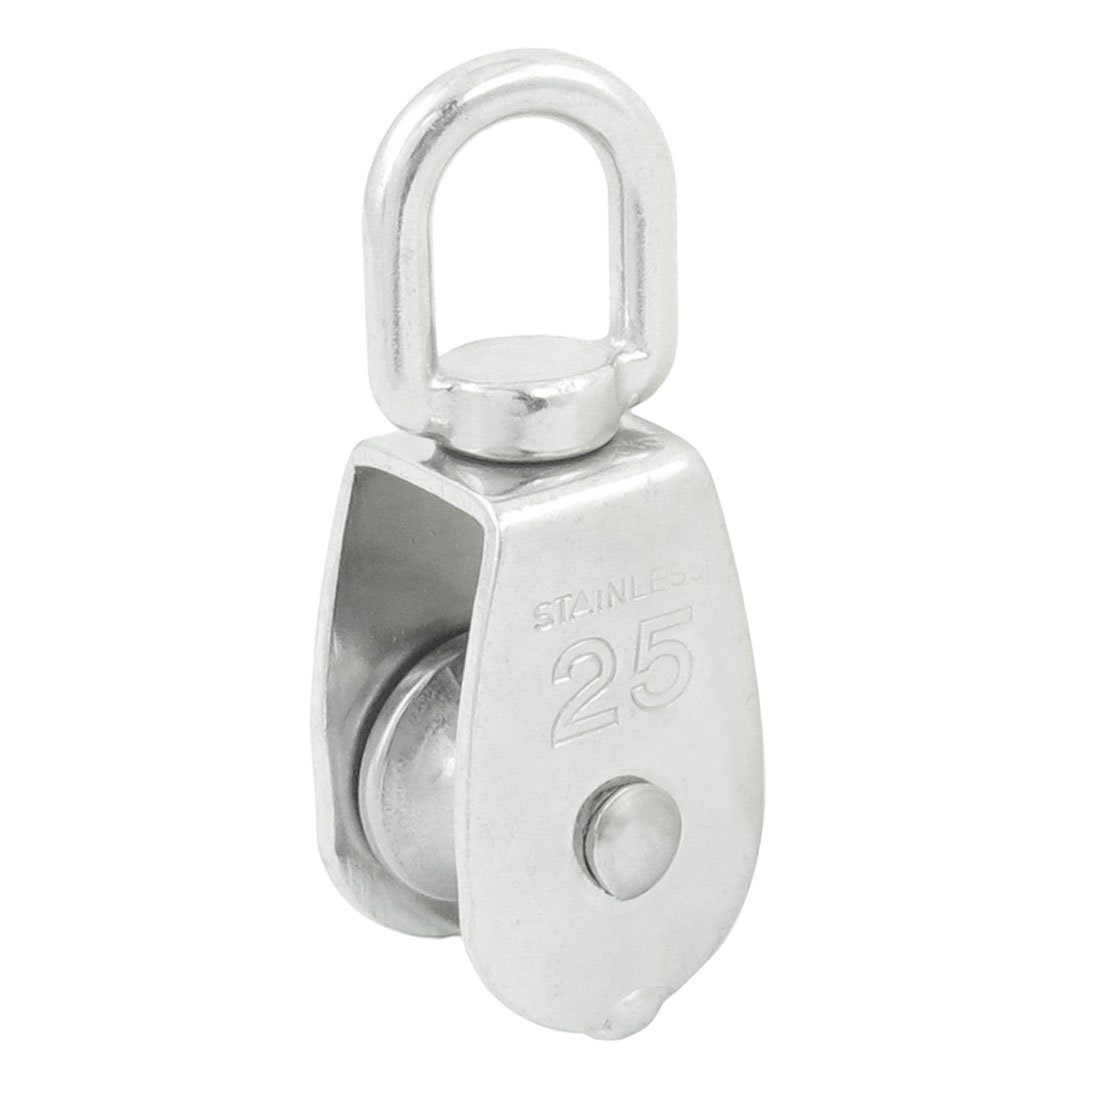 uxcell 20mm Diameter Stainless Steel Single Sheave Fixed Eye Rope Pulley